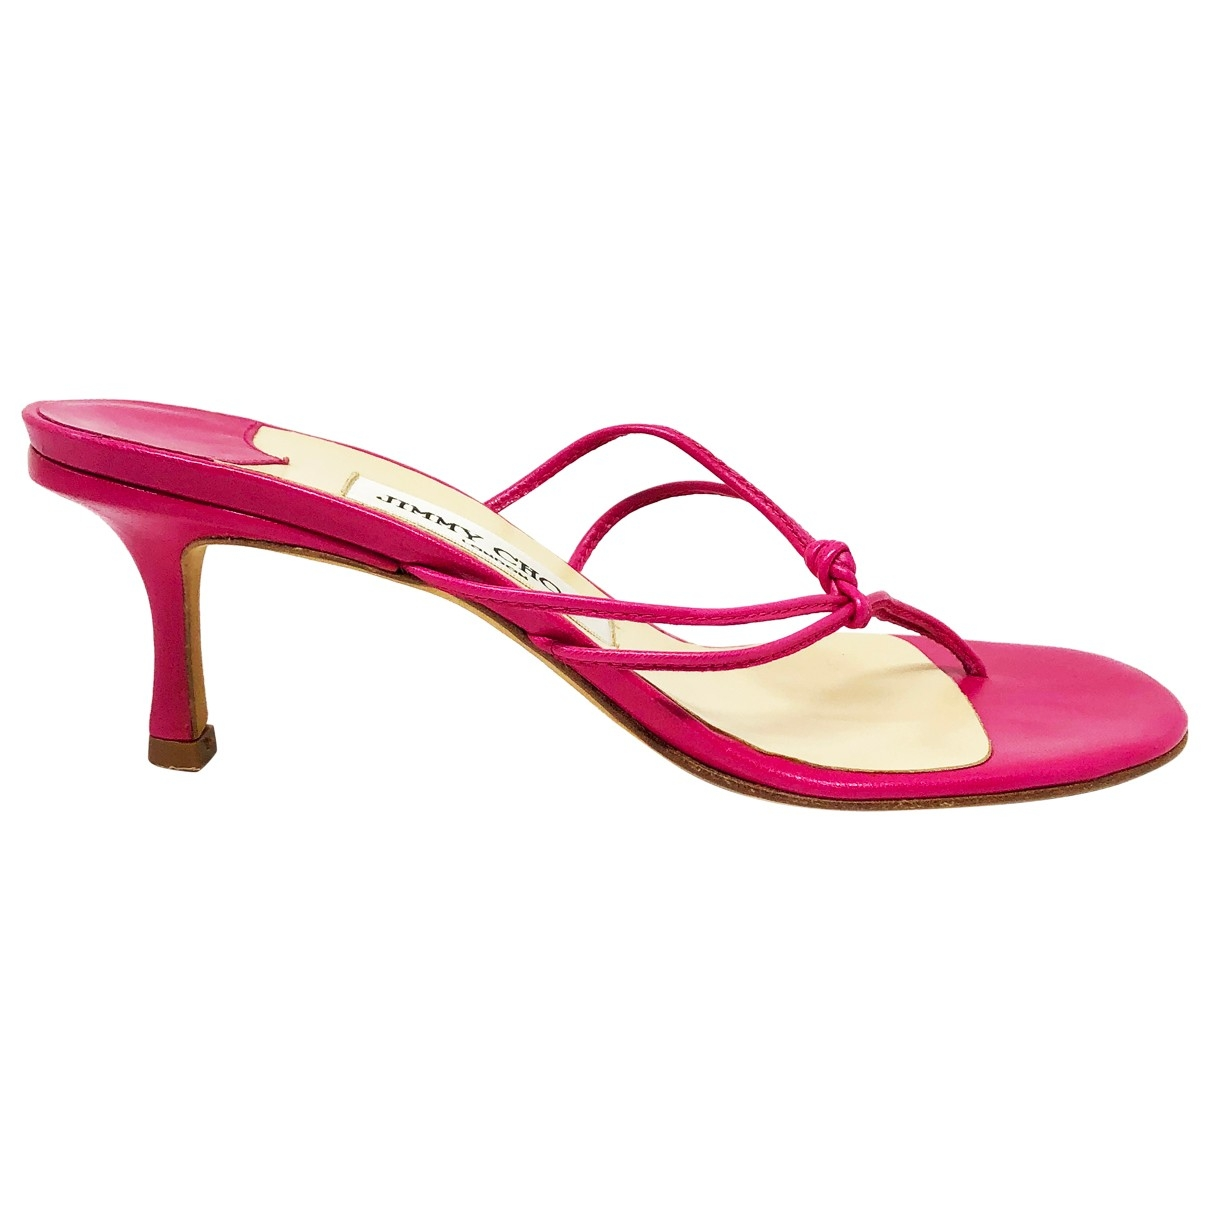 Jimmy Choo \N Pink Leather Sandals for Women 36 EU